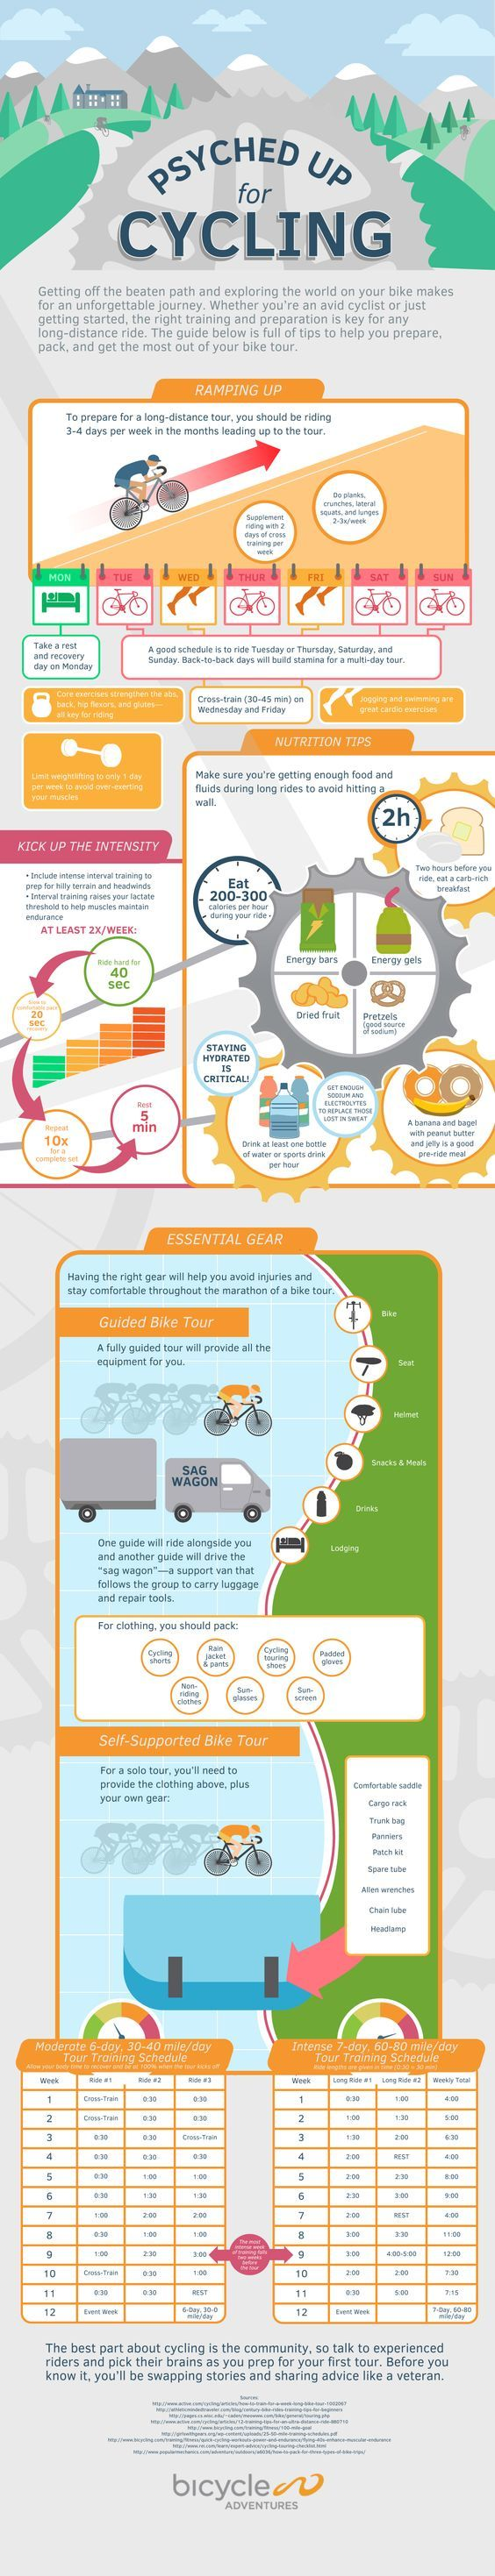 Psyched for Cycling: Preparing for a Bike Tour | Bicycle Adventures Infographic: